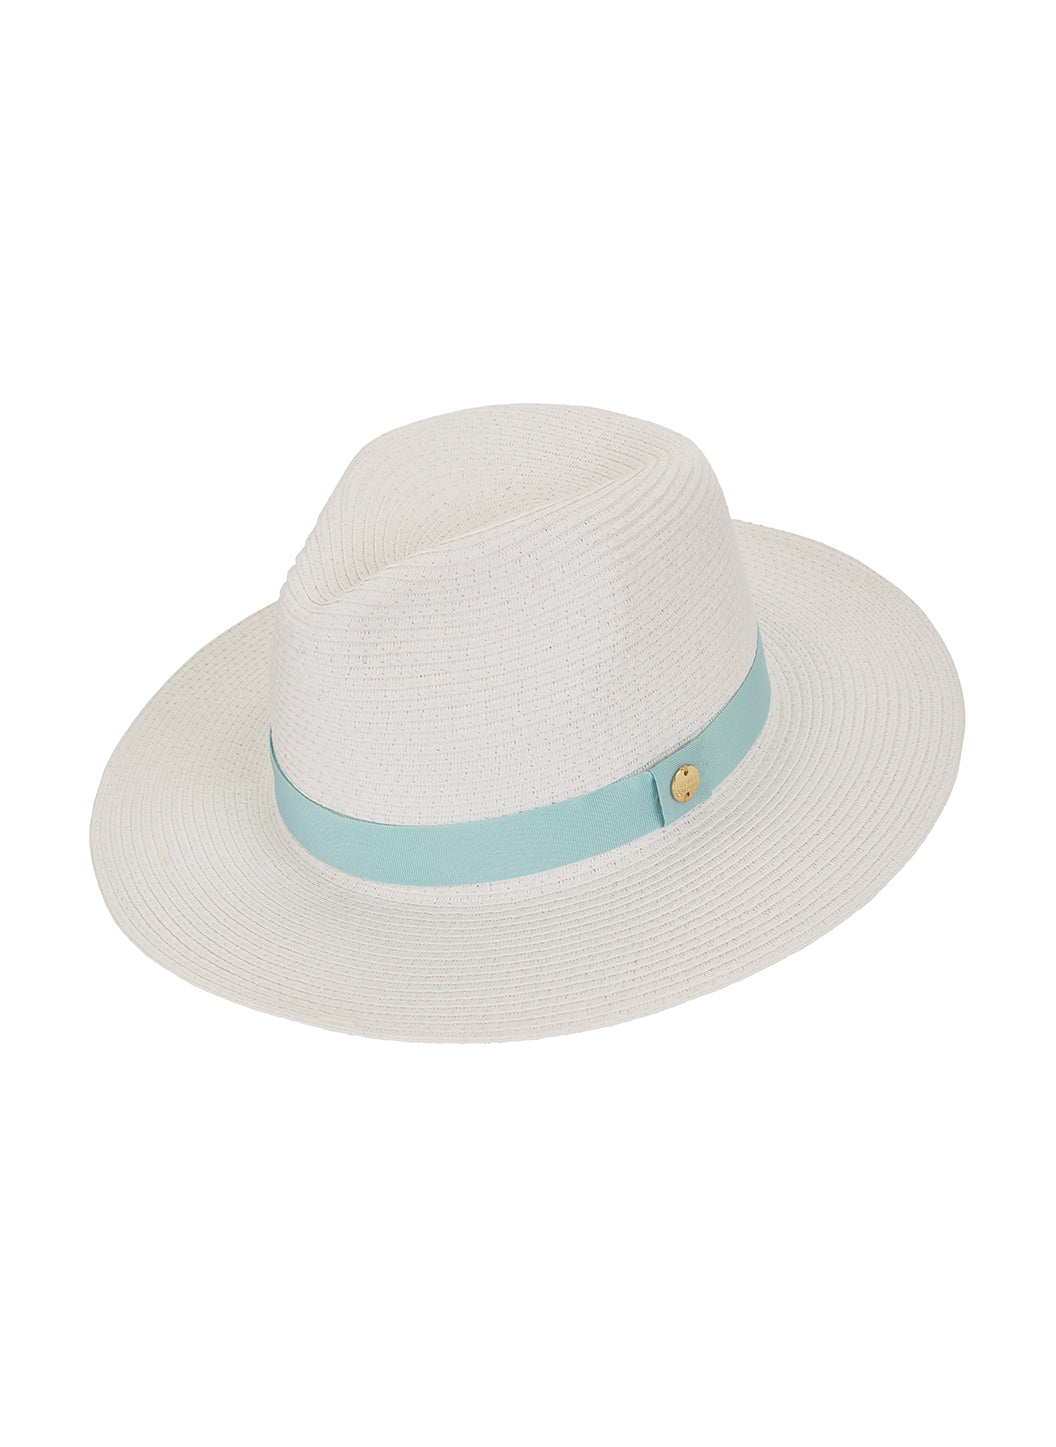 Fedora Hat White/Mint